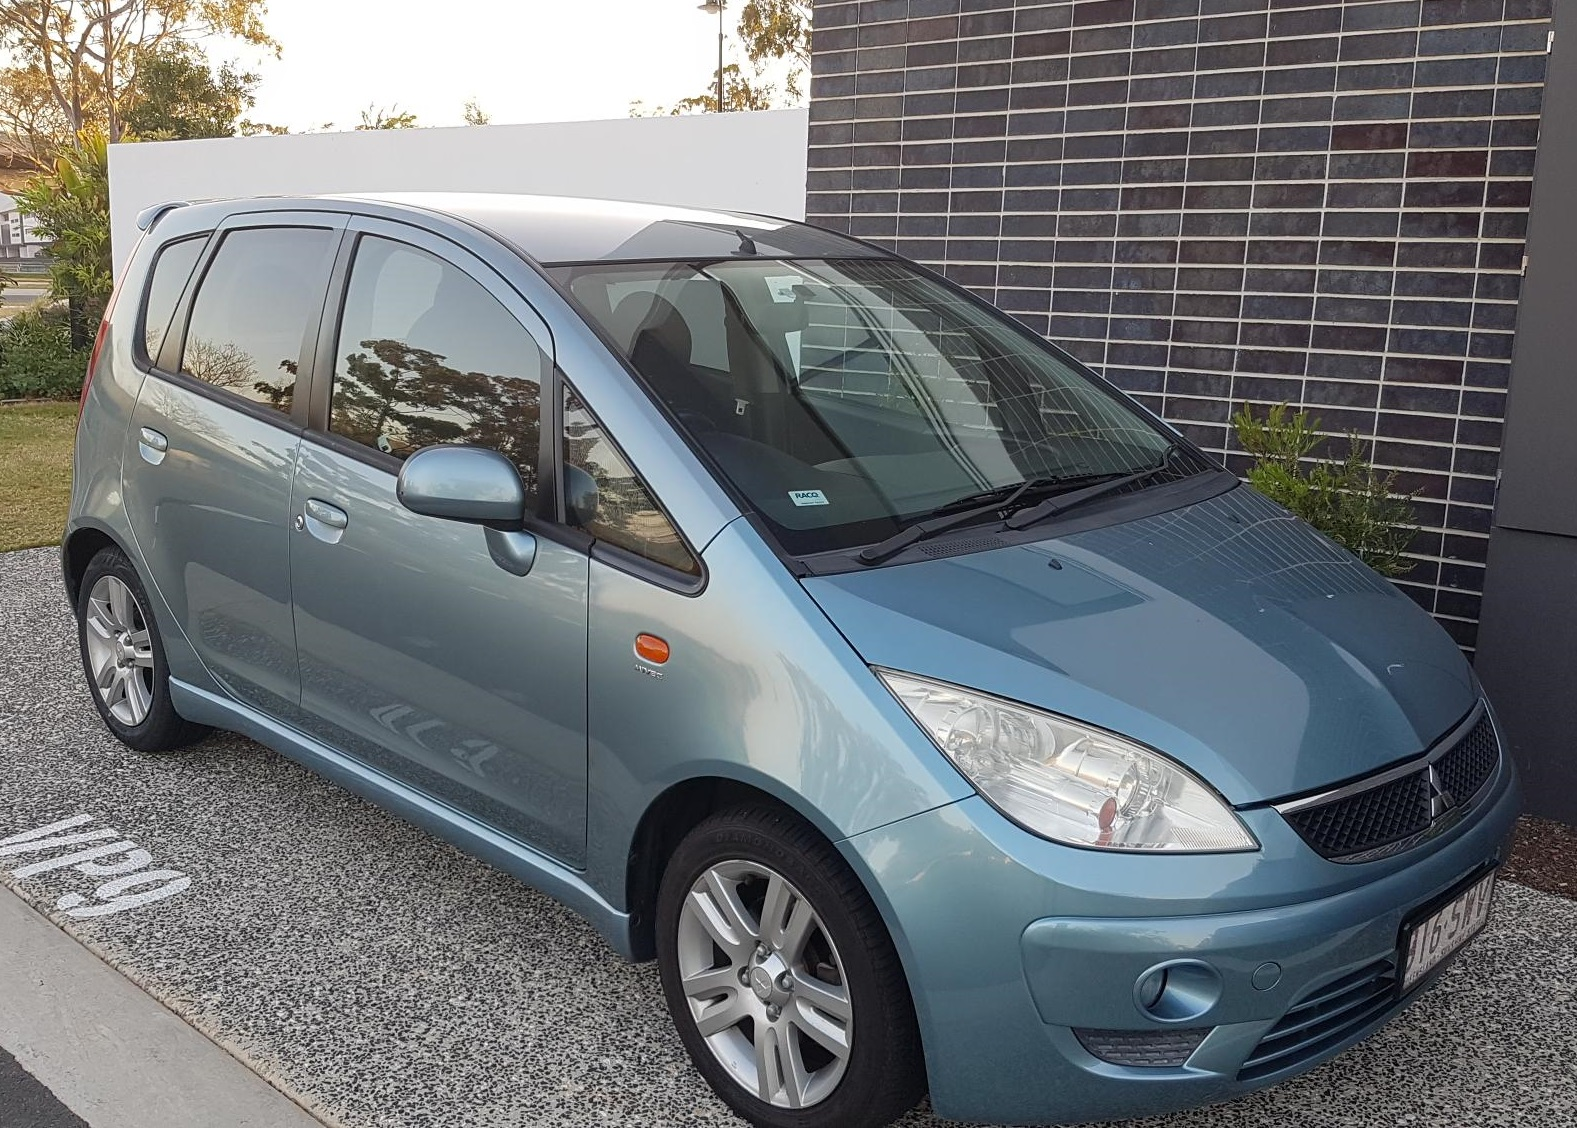 Picture of William's 2009 Mitsubishi Colt